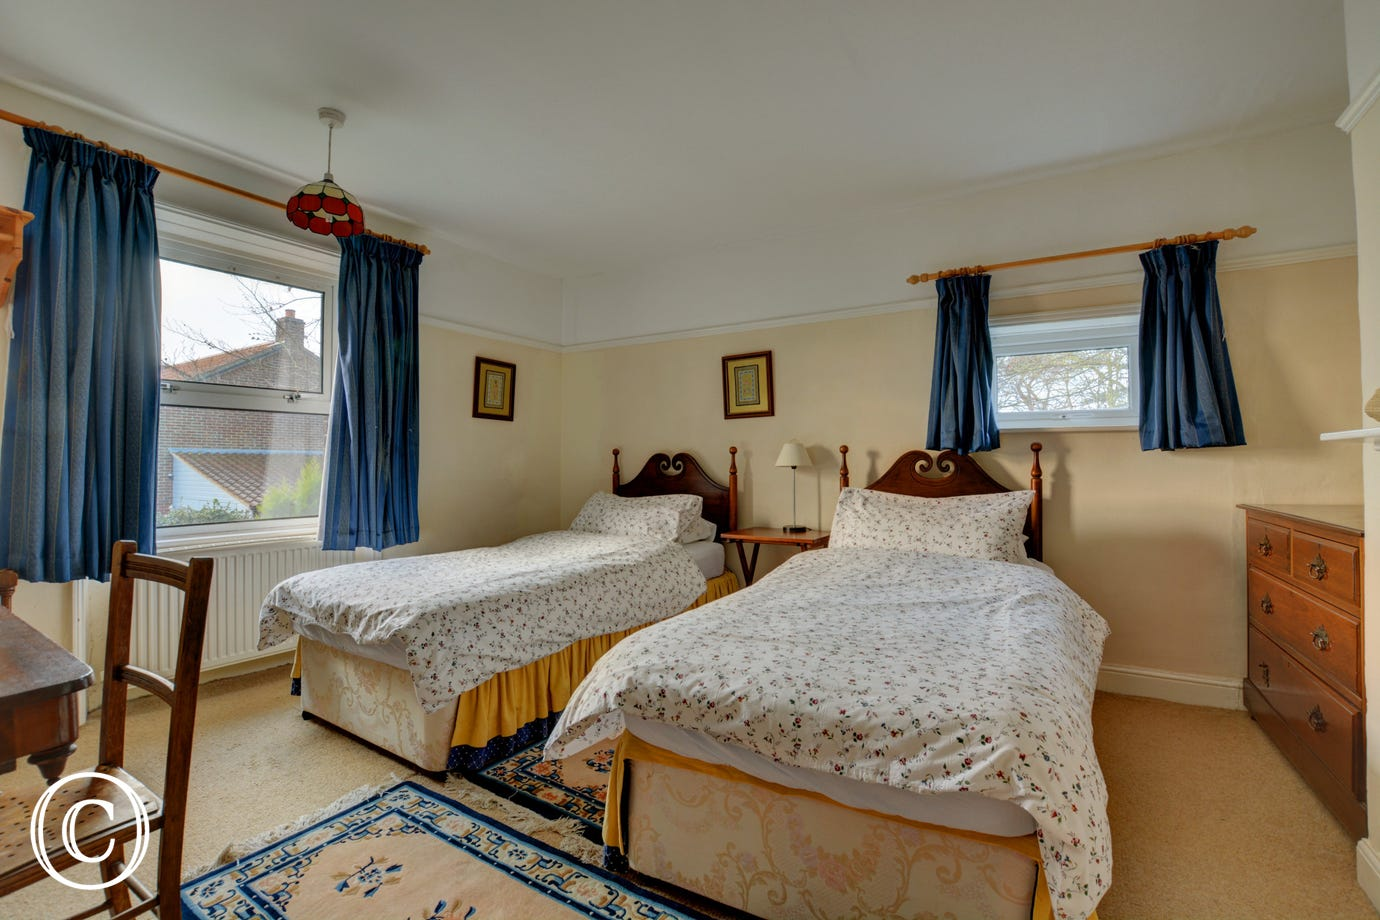 Traditionally furnished double bedroom with twin beds and a feature fireplace